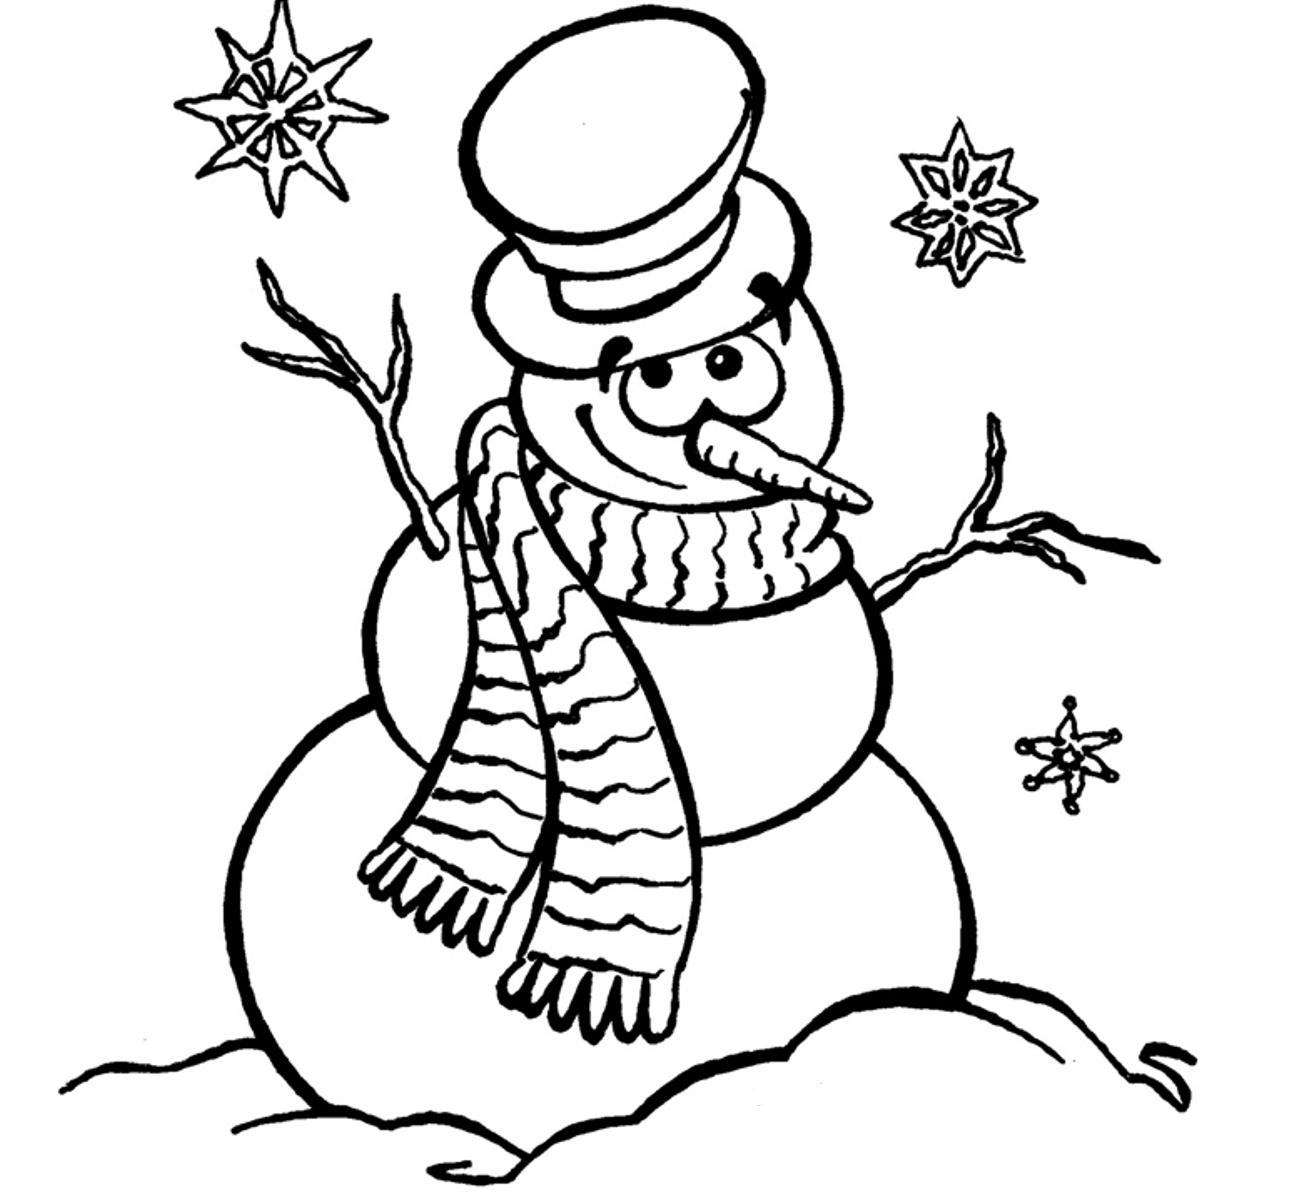 Drawn Snowman Colouring Page